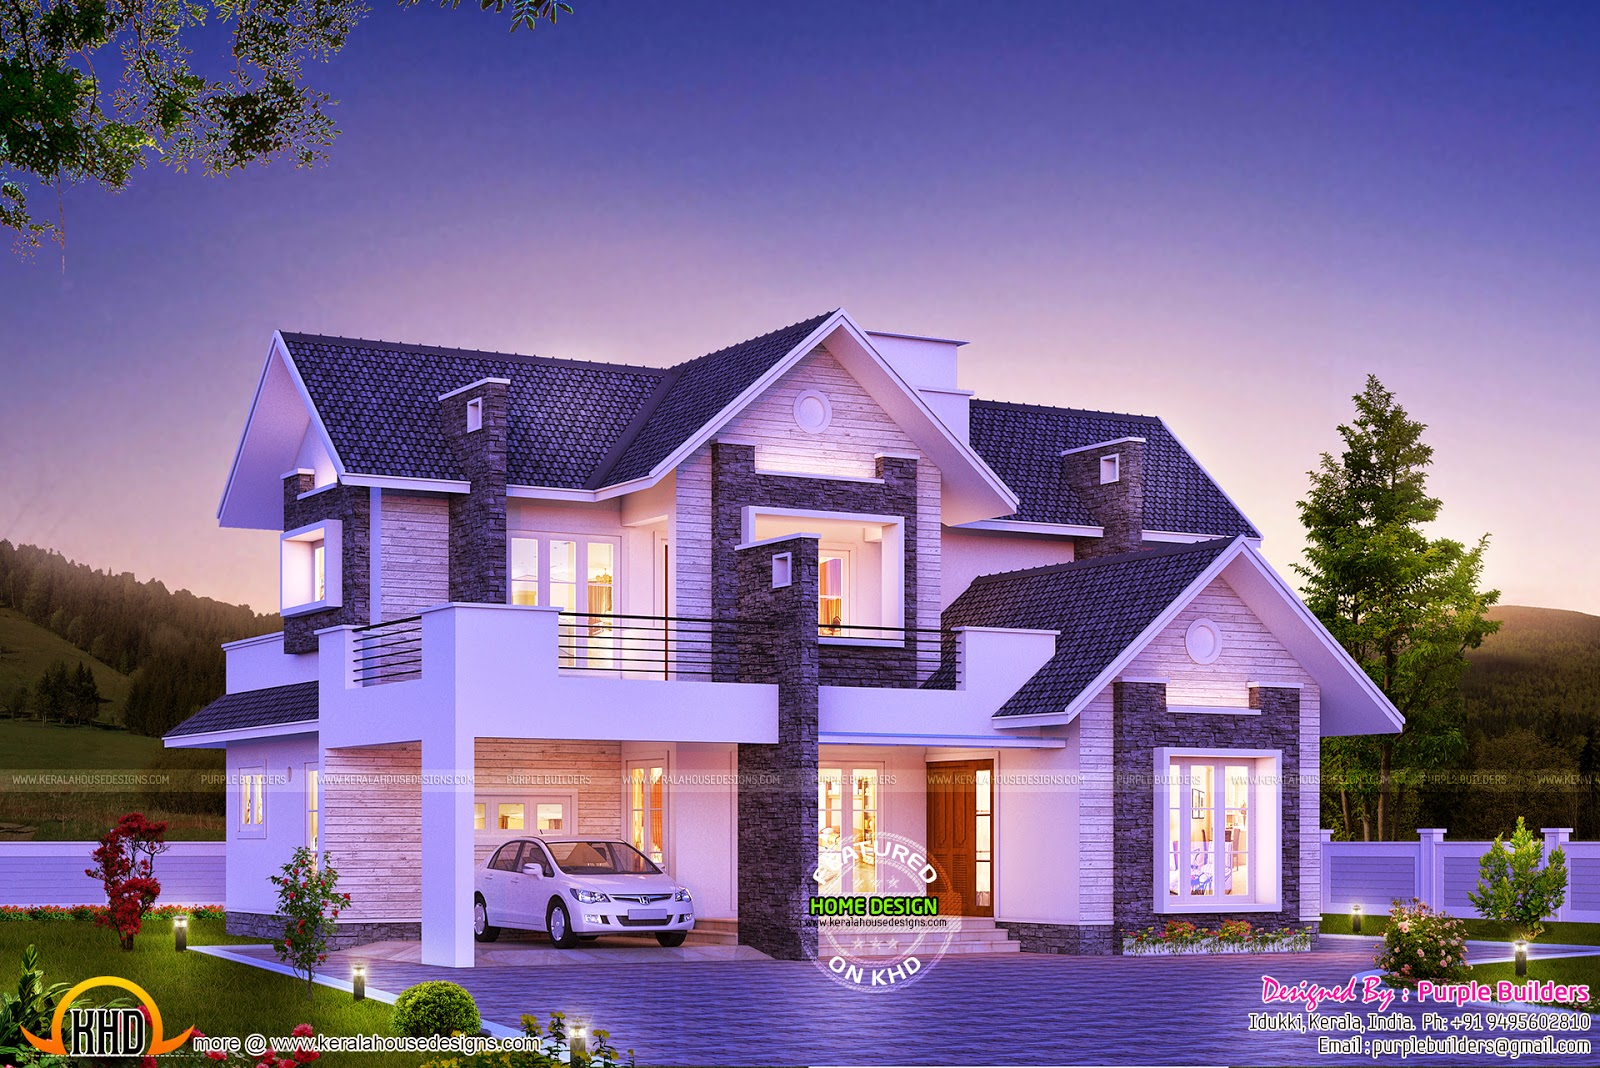 Super dream home - Kerala home design and floor plans